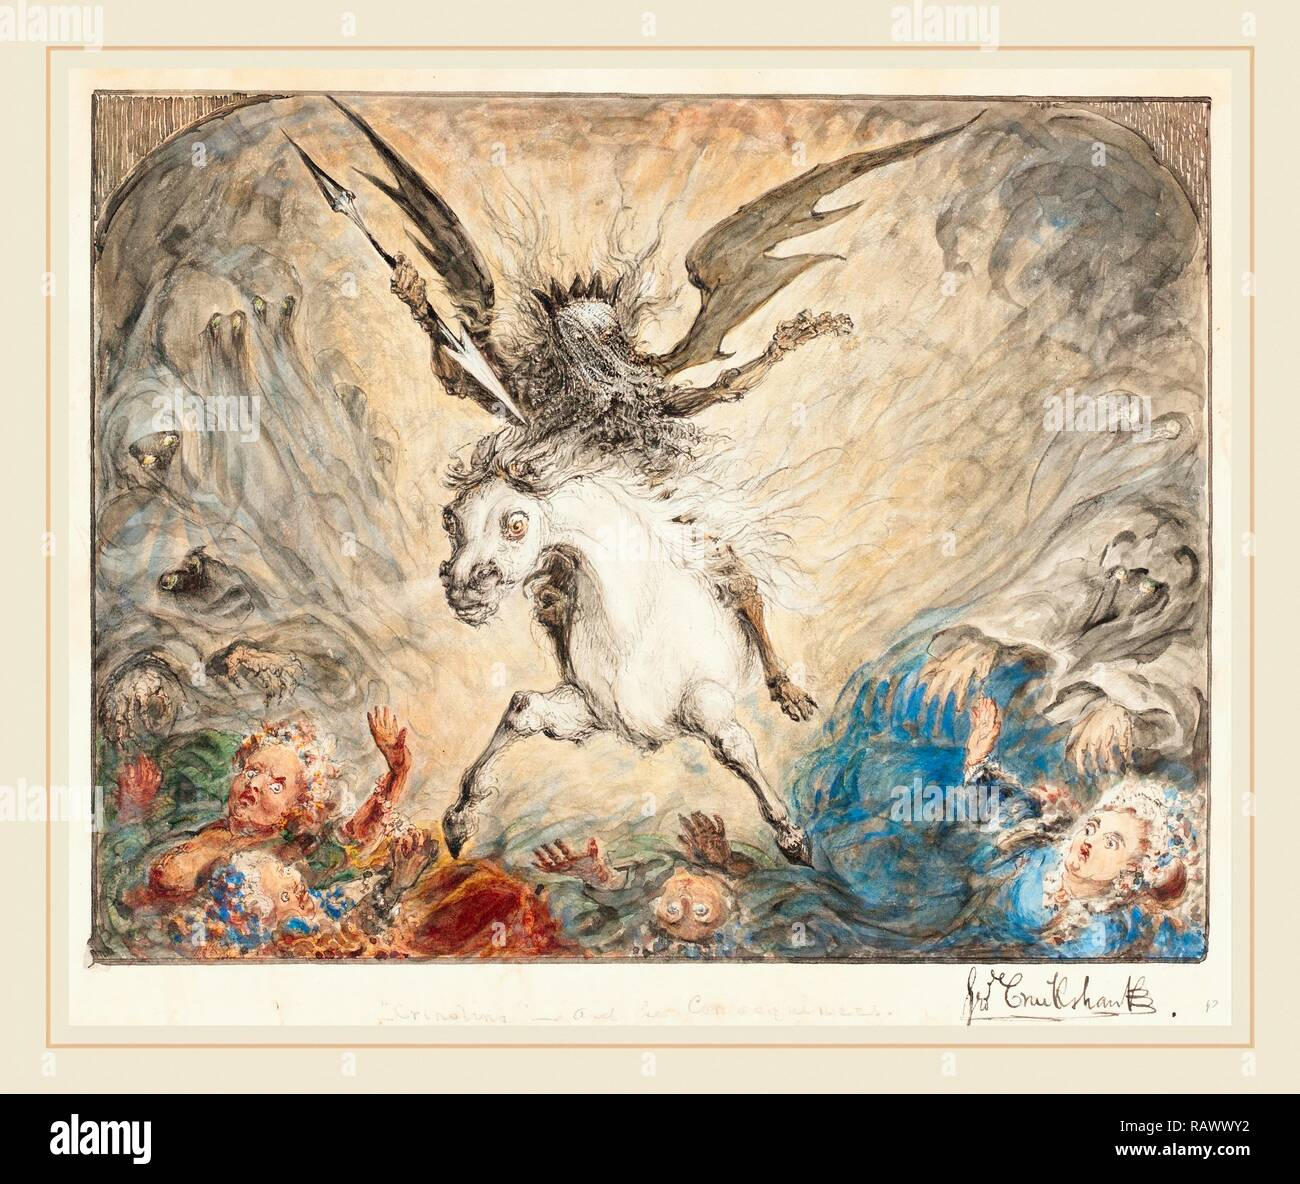 George Cruikshank, British (1792-1878), 'Crinolina'-and the Consequences [recto], 1865, pen and black ink with reimagined - Stock Image